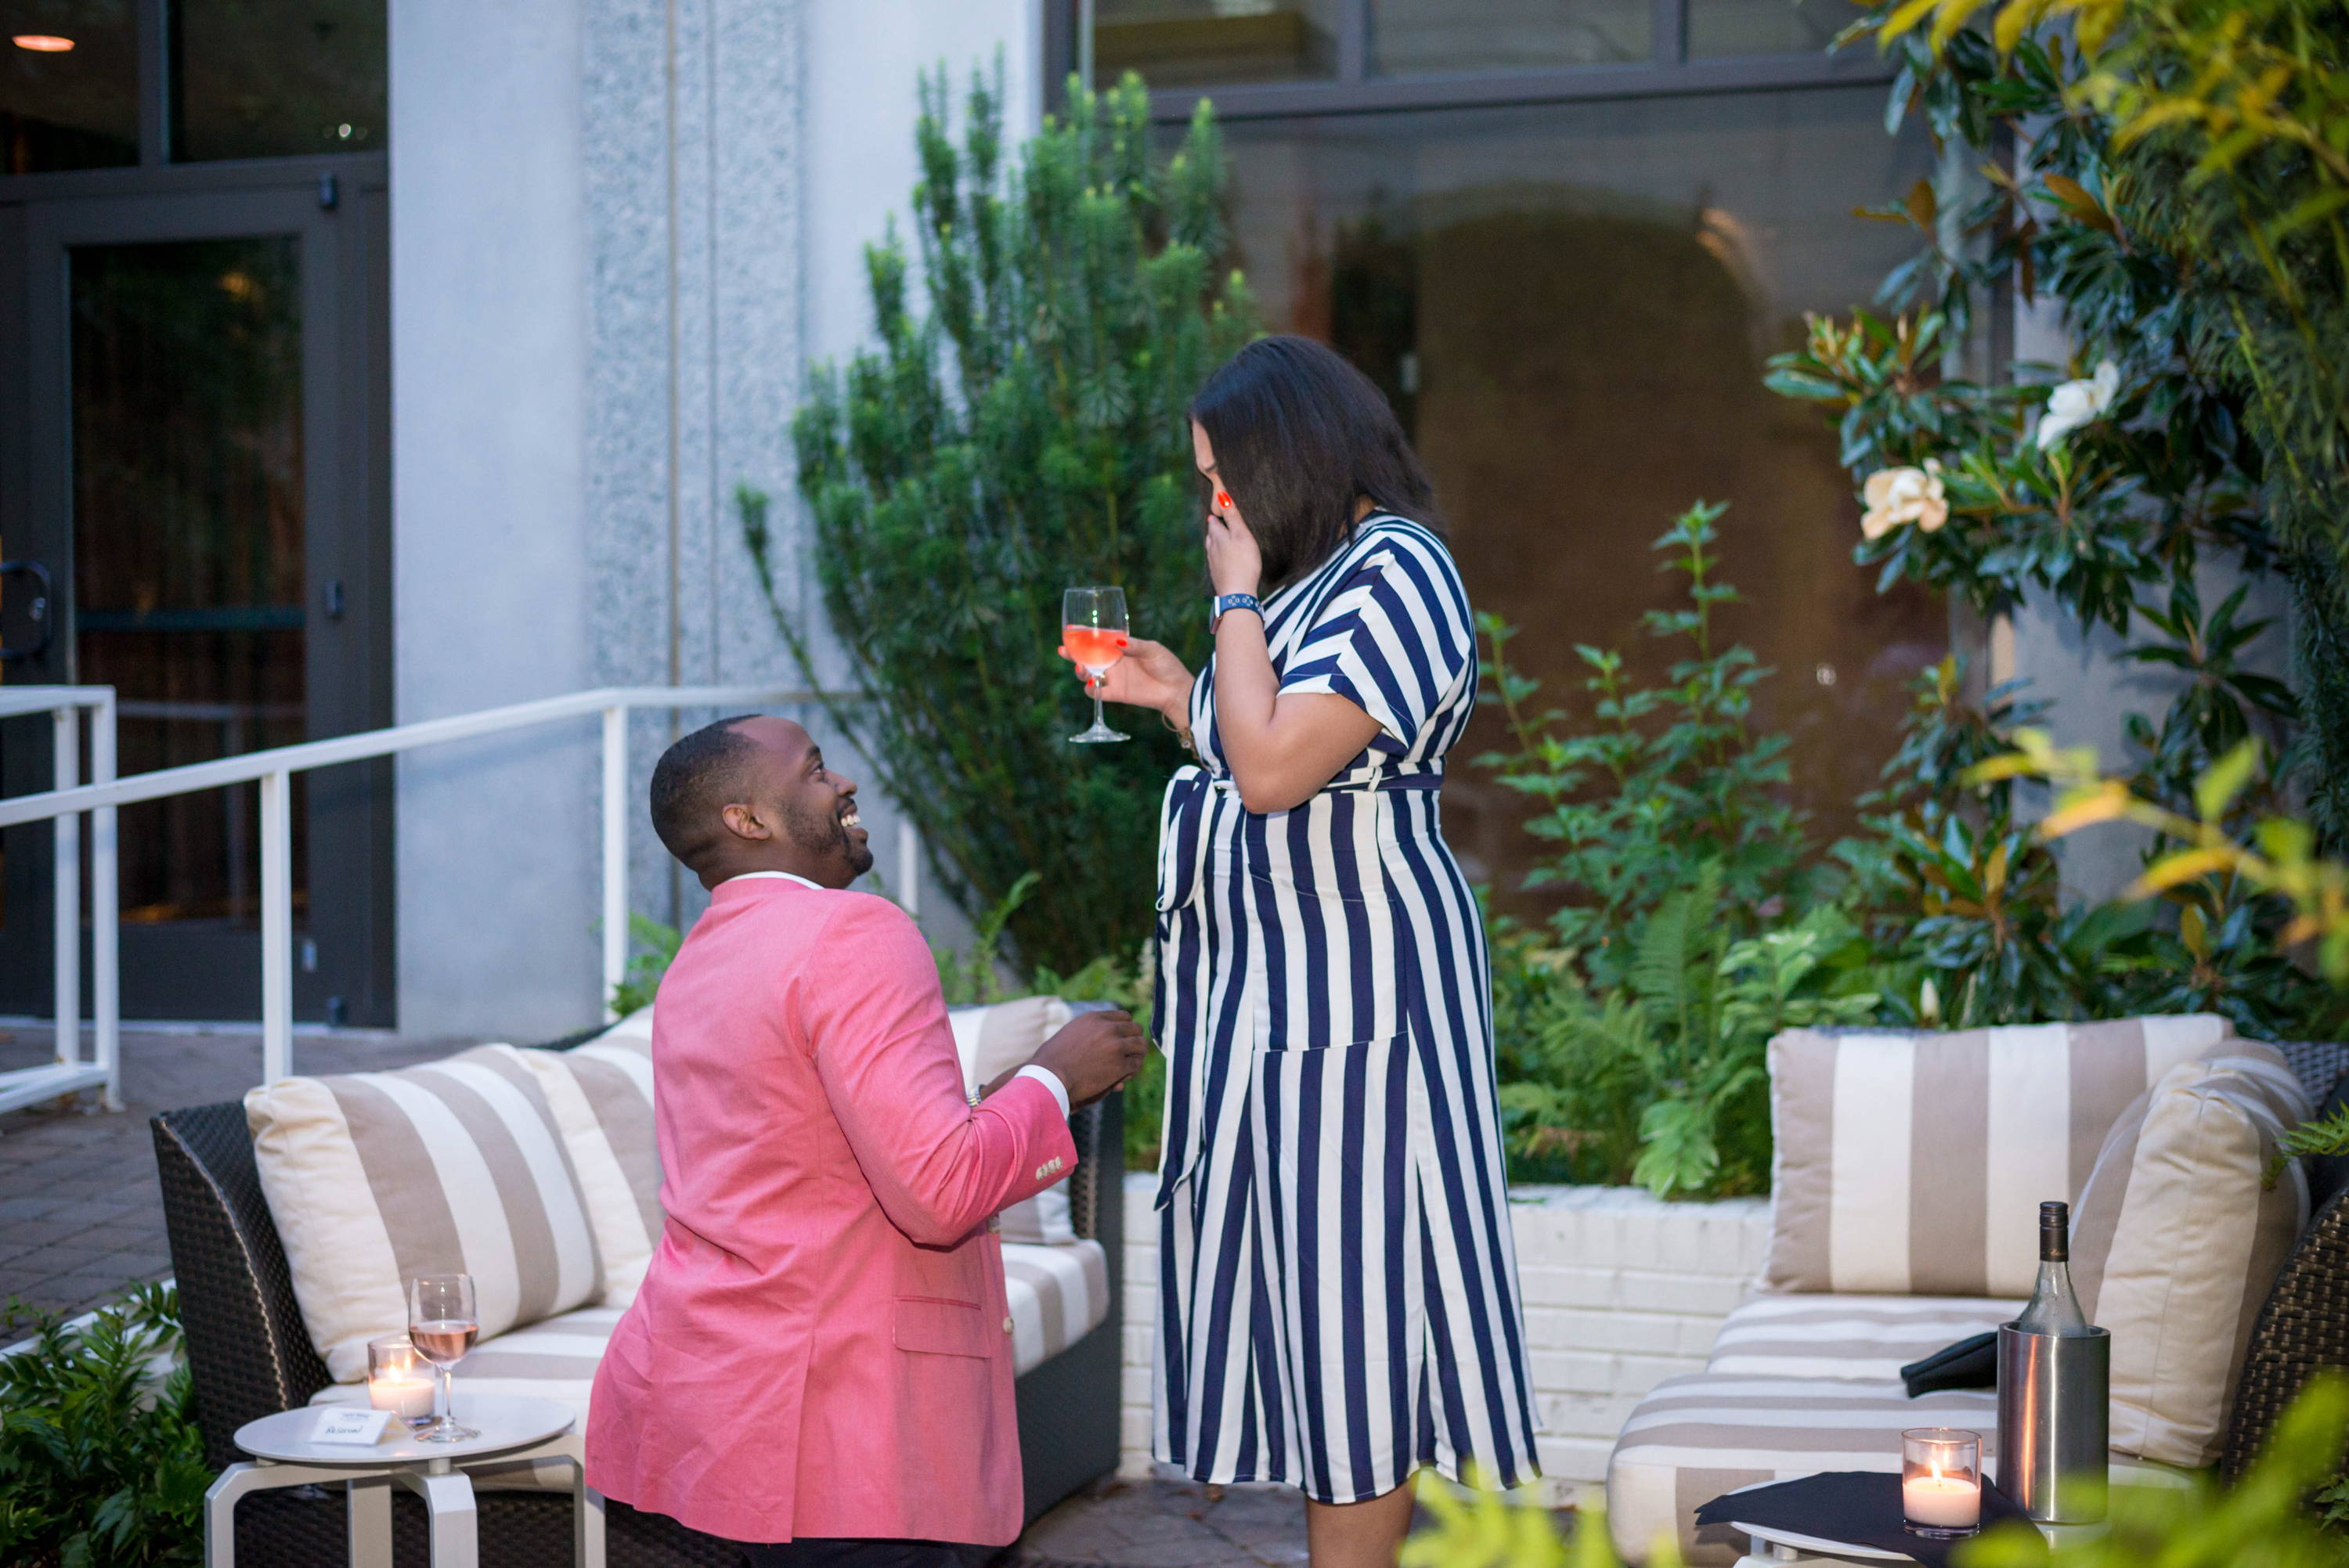 Carl Proposes to Veronica with Schiffman's Engagement Ring